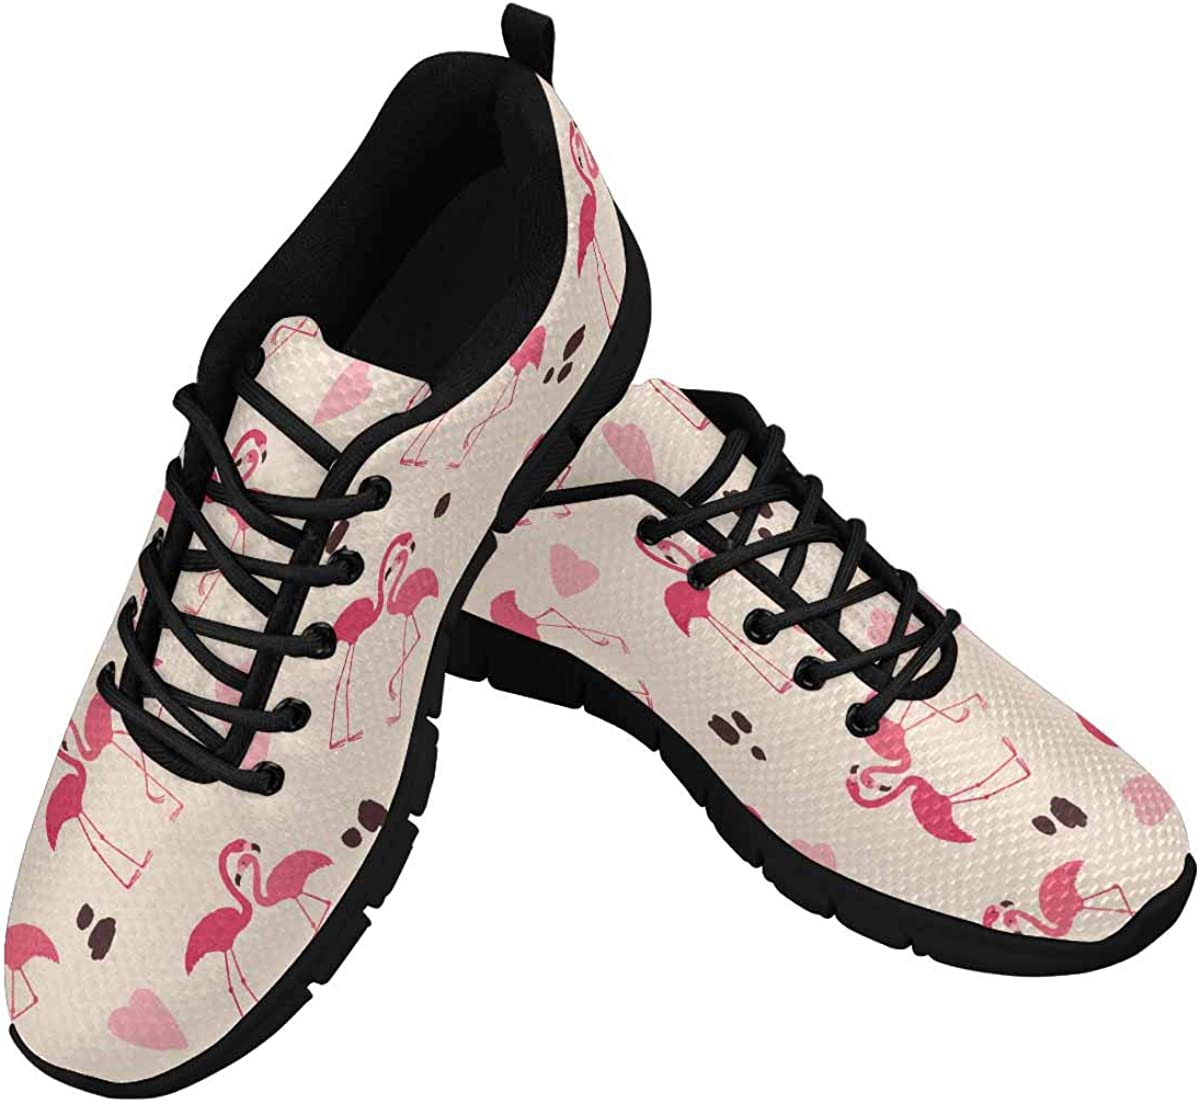 INTERESTPRINT Flamingos Couple Women's Lightweight Athletic Casual Gym Sneakers